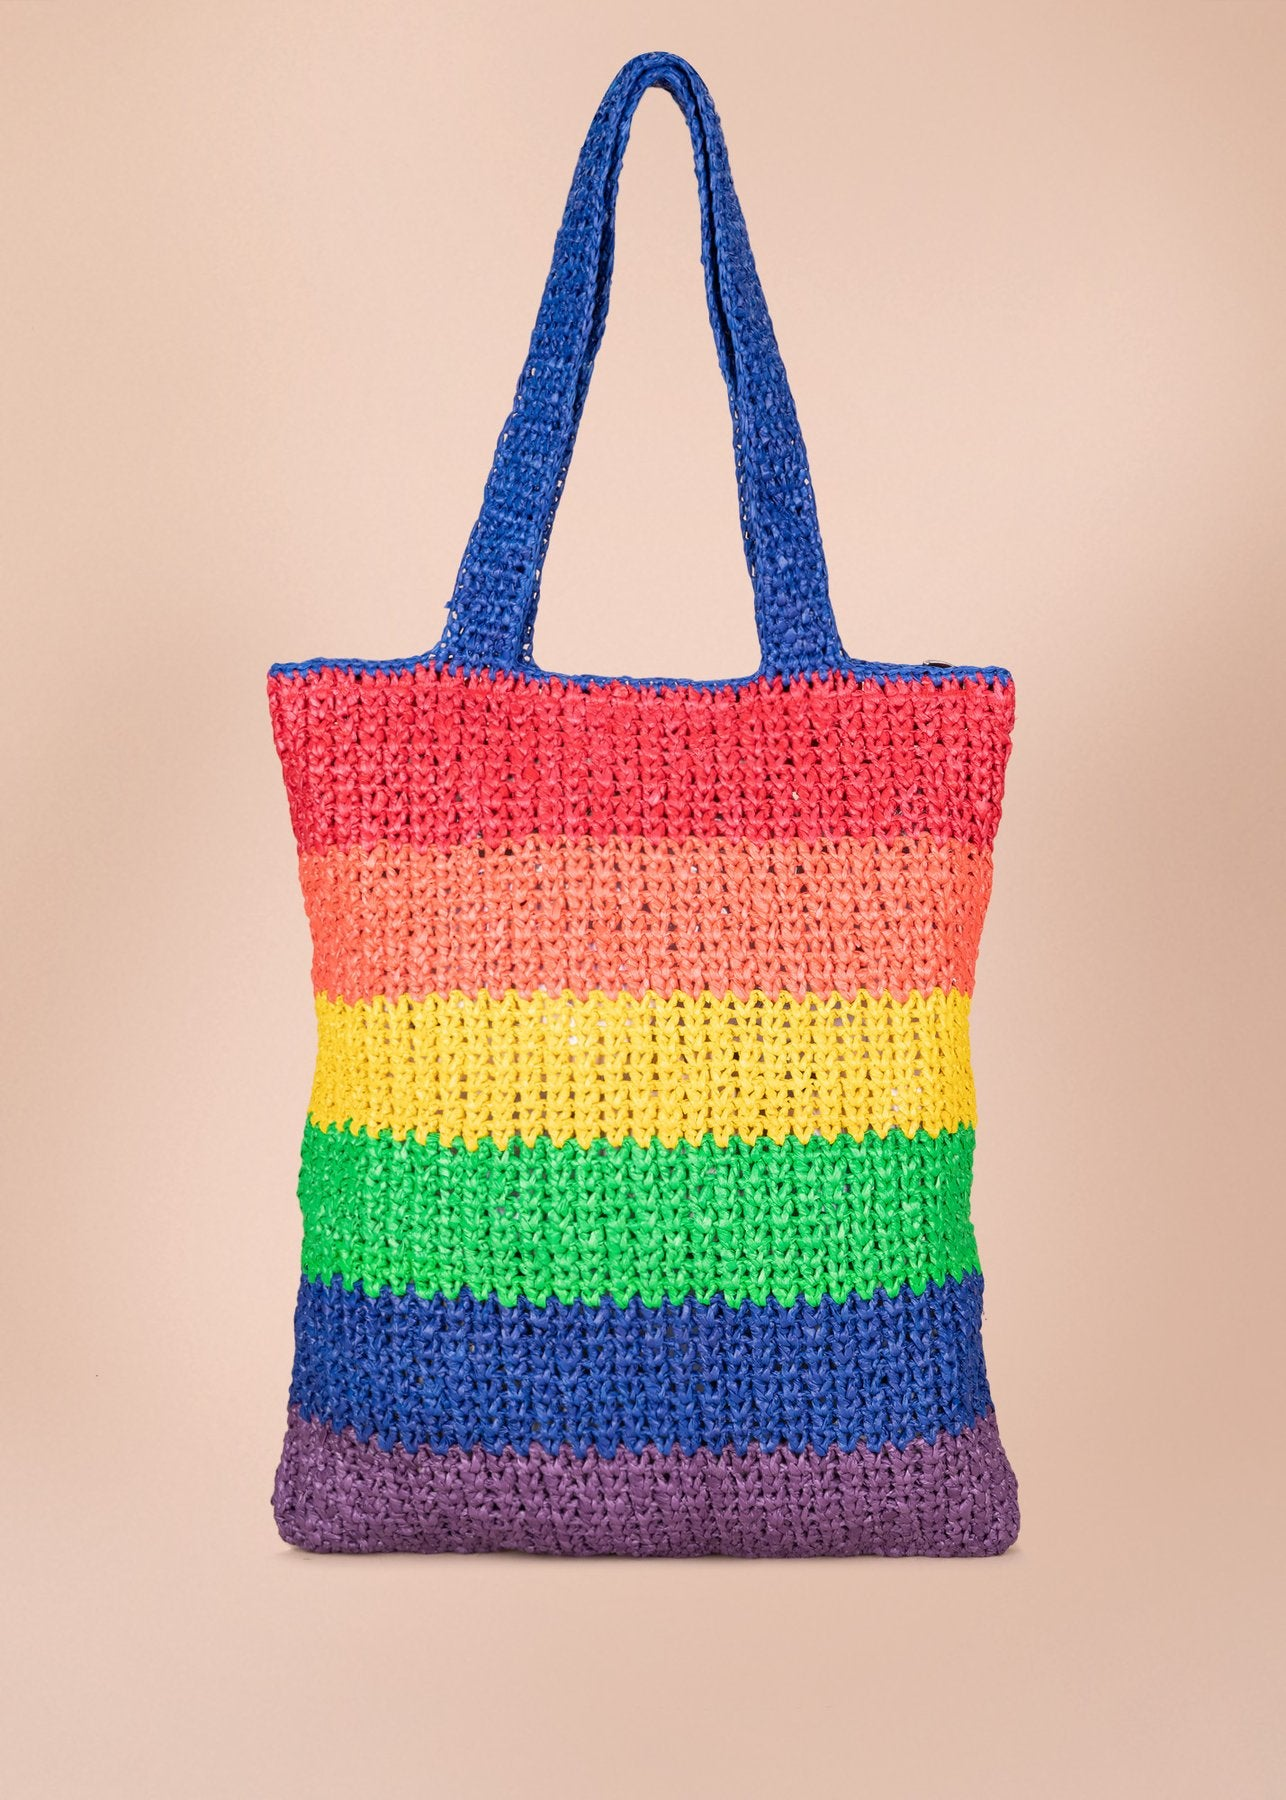 culture-shop-philippines-made-bags